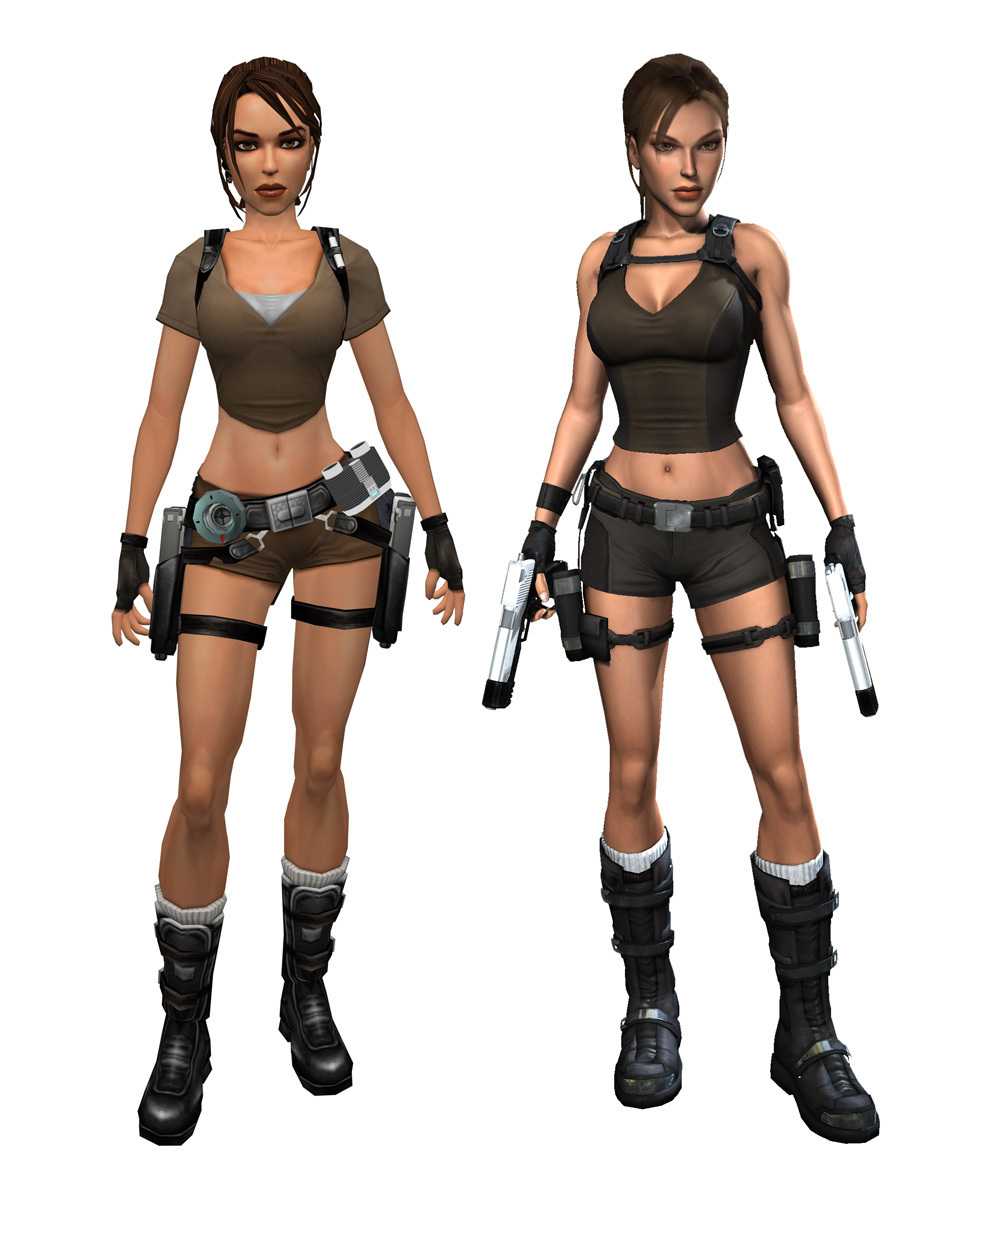 Tomb Raider's Lara Croft.